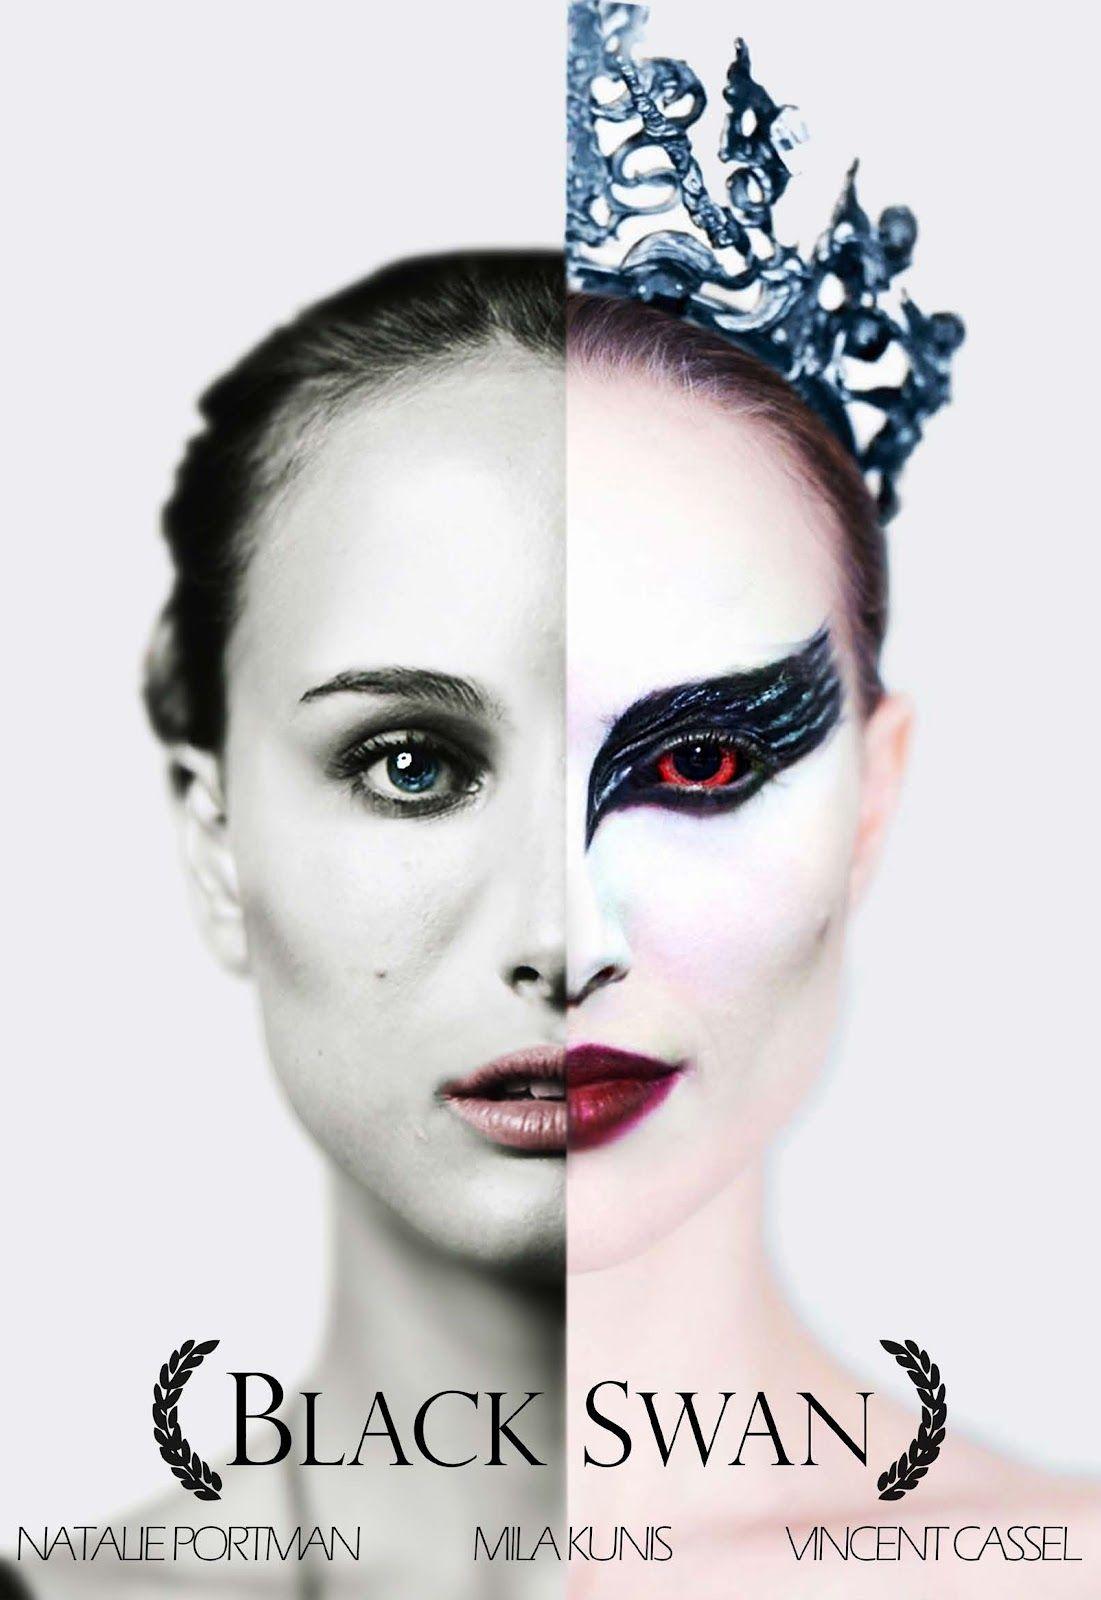 Photographies Illustrations Drawings Black Swan Movie Poster Black Swan Movie Black Swan Movie Black